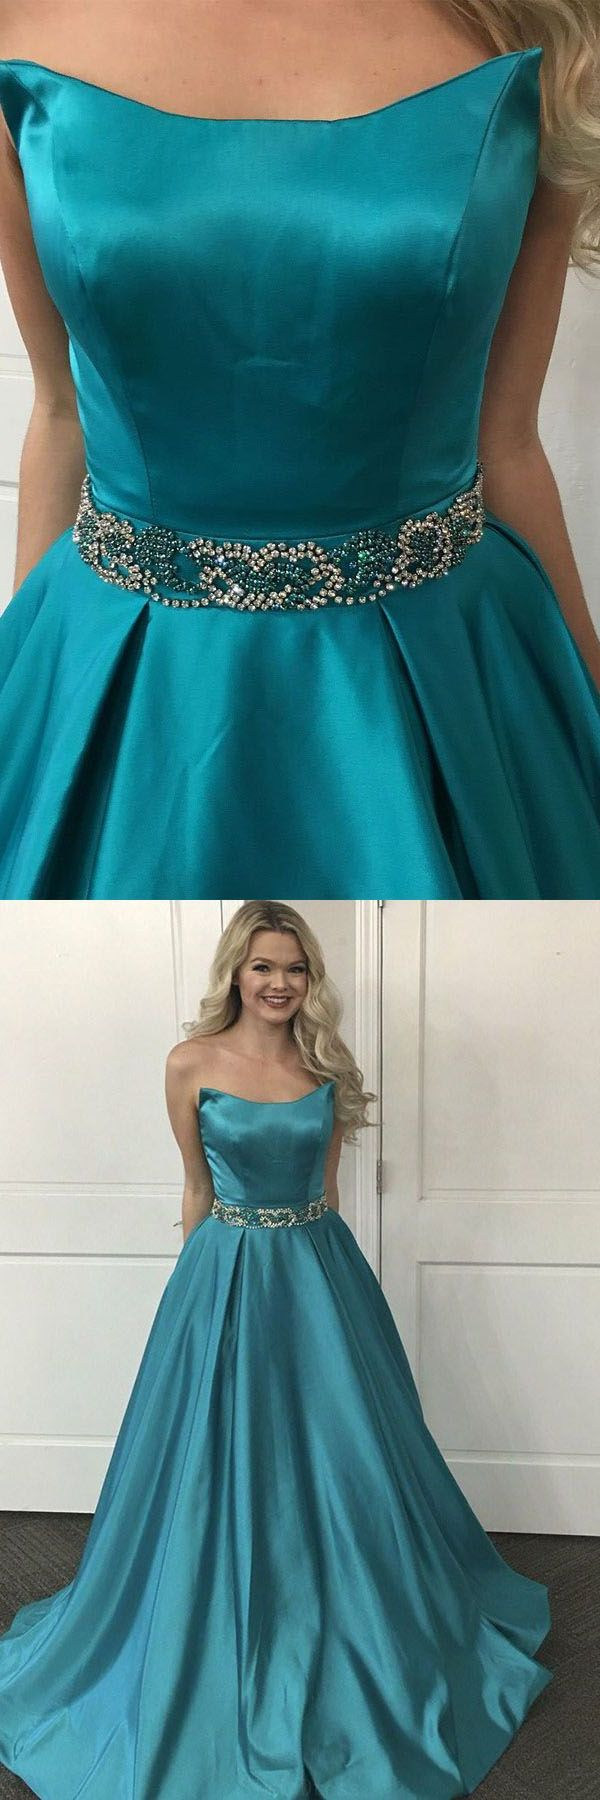 Cheap comfortable prom dresses strapless sweep train turquoise